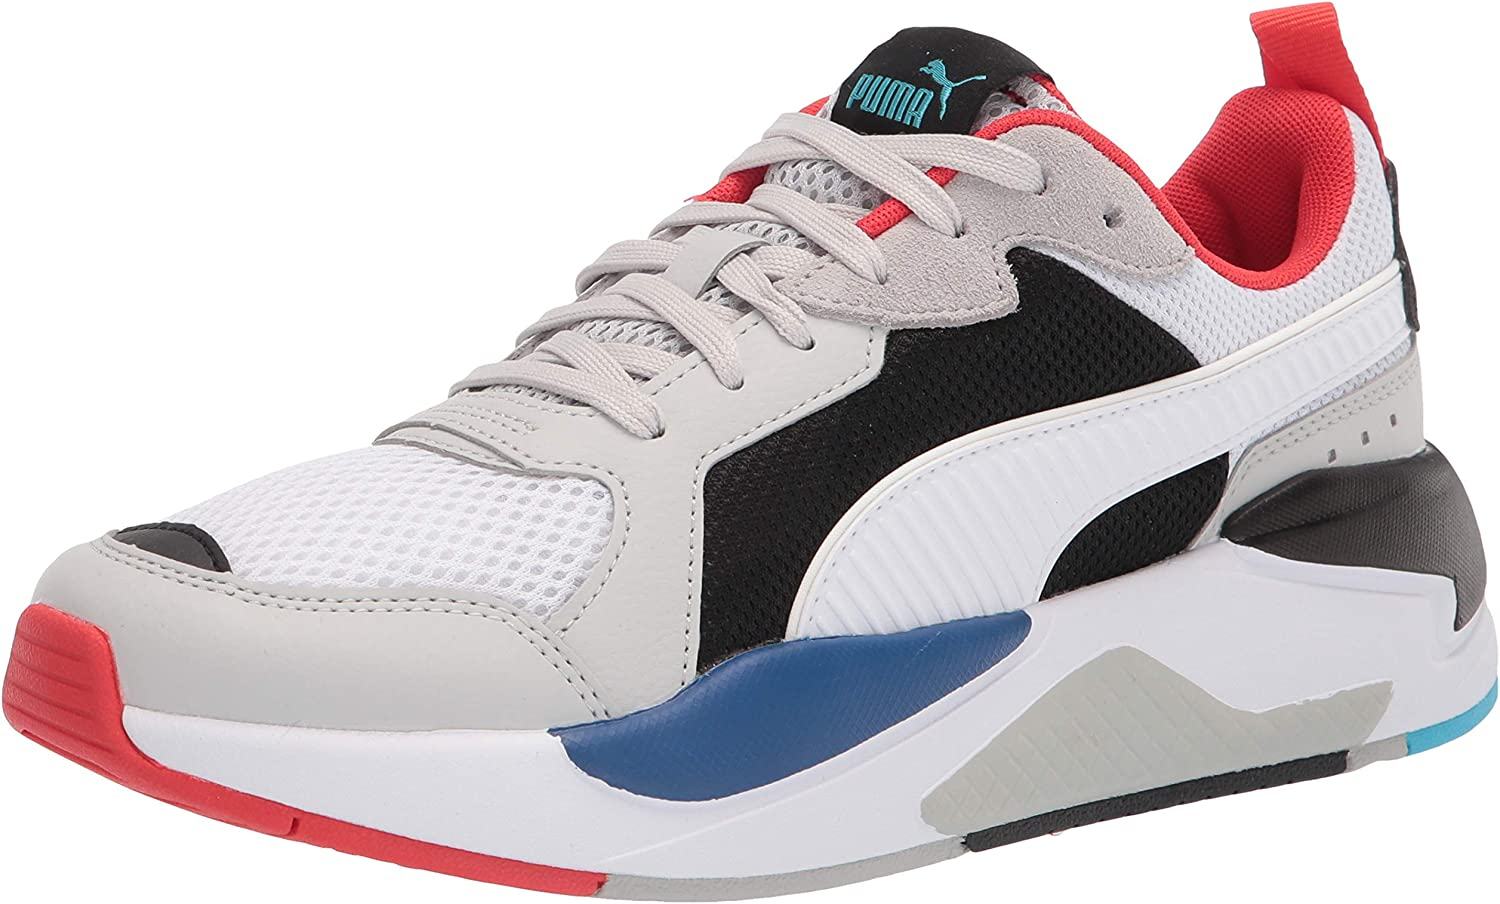 PUMA Men's X-Ray Sneakers, os